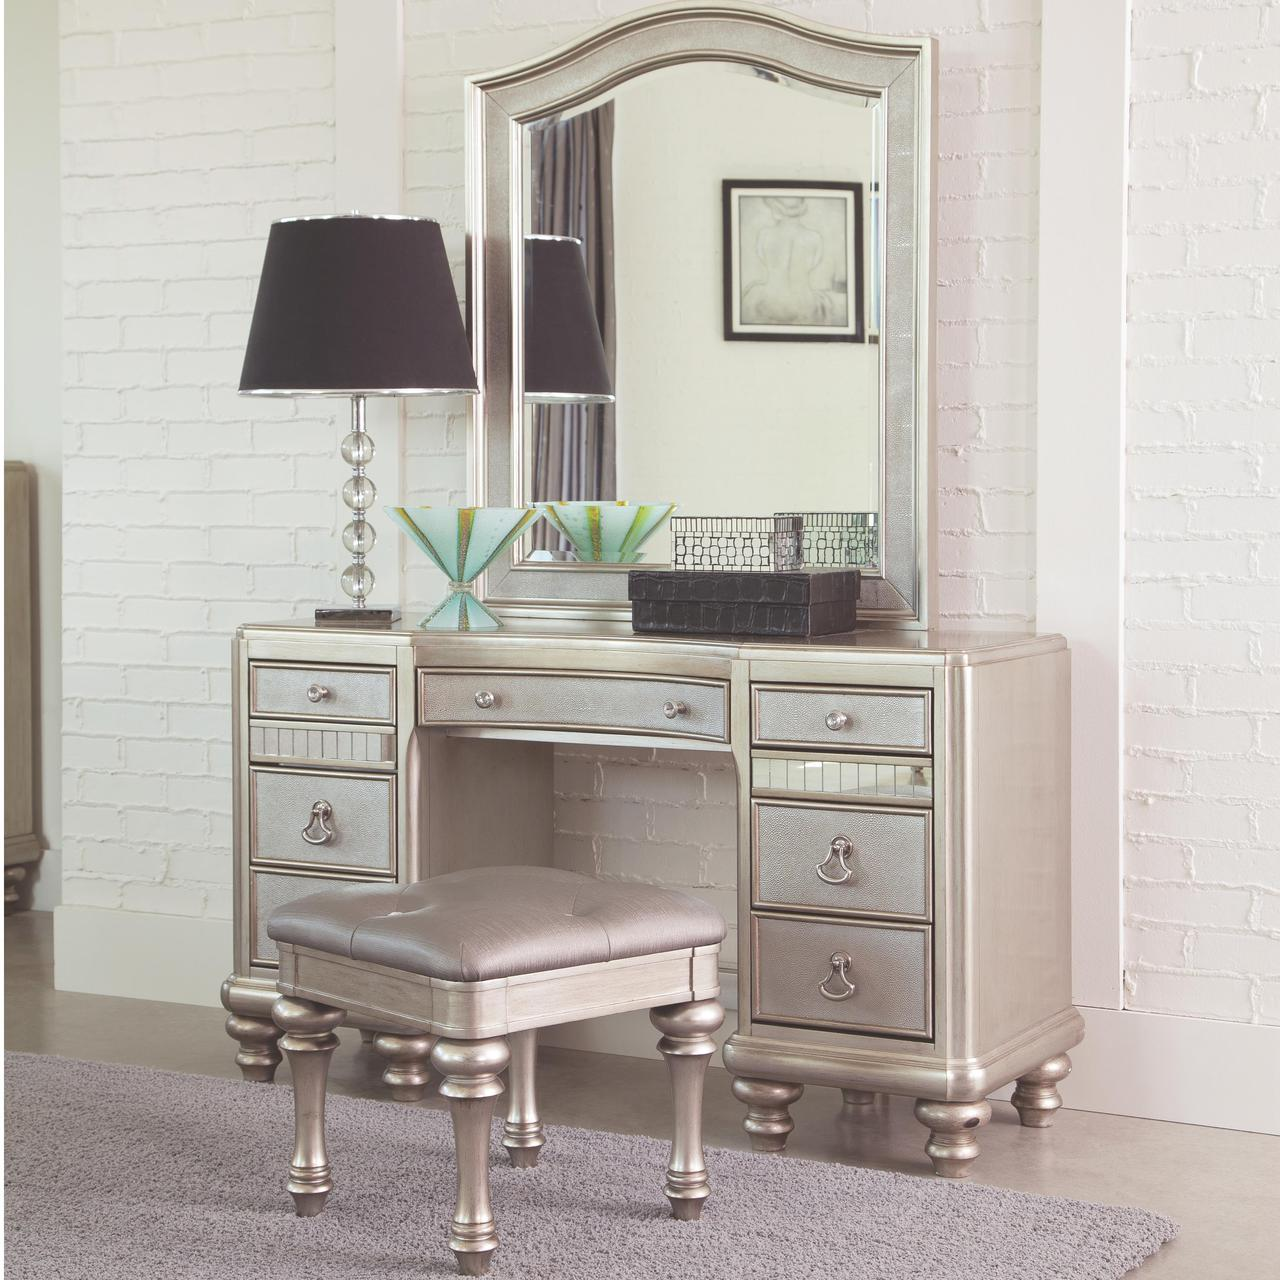 Lex Metallic Platinum Dressing Makeup Table With Drawers Mirror